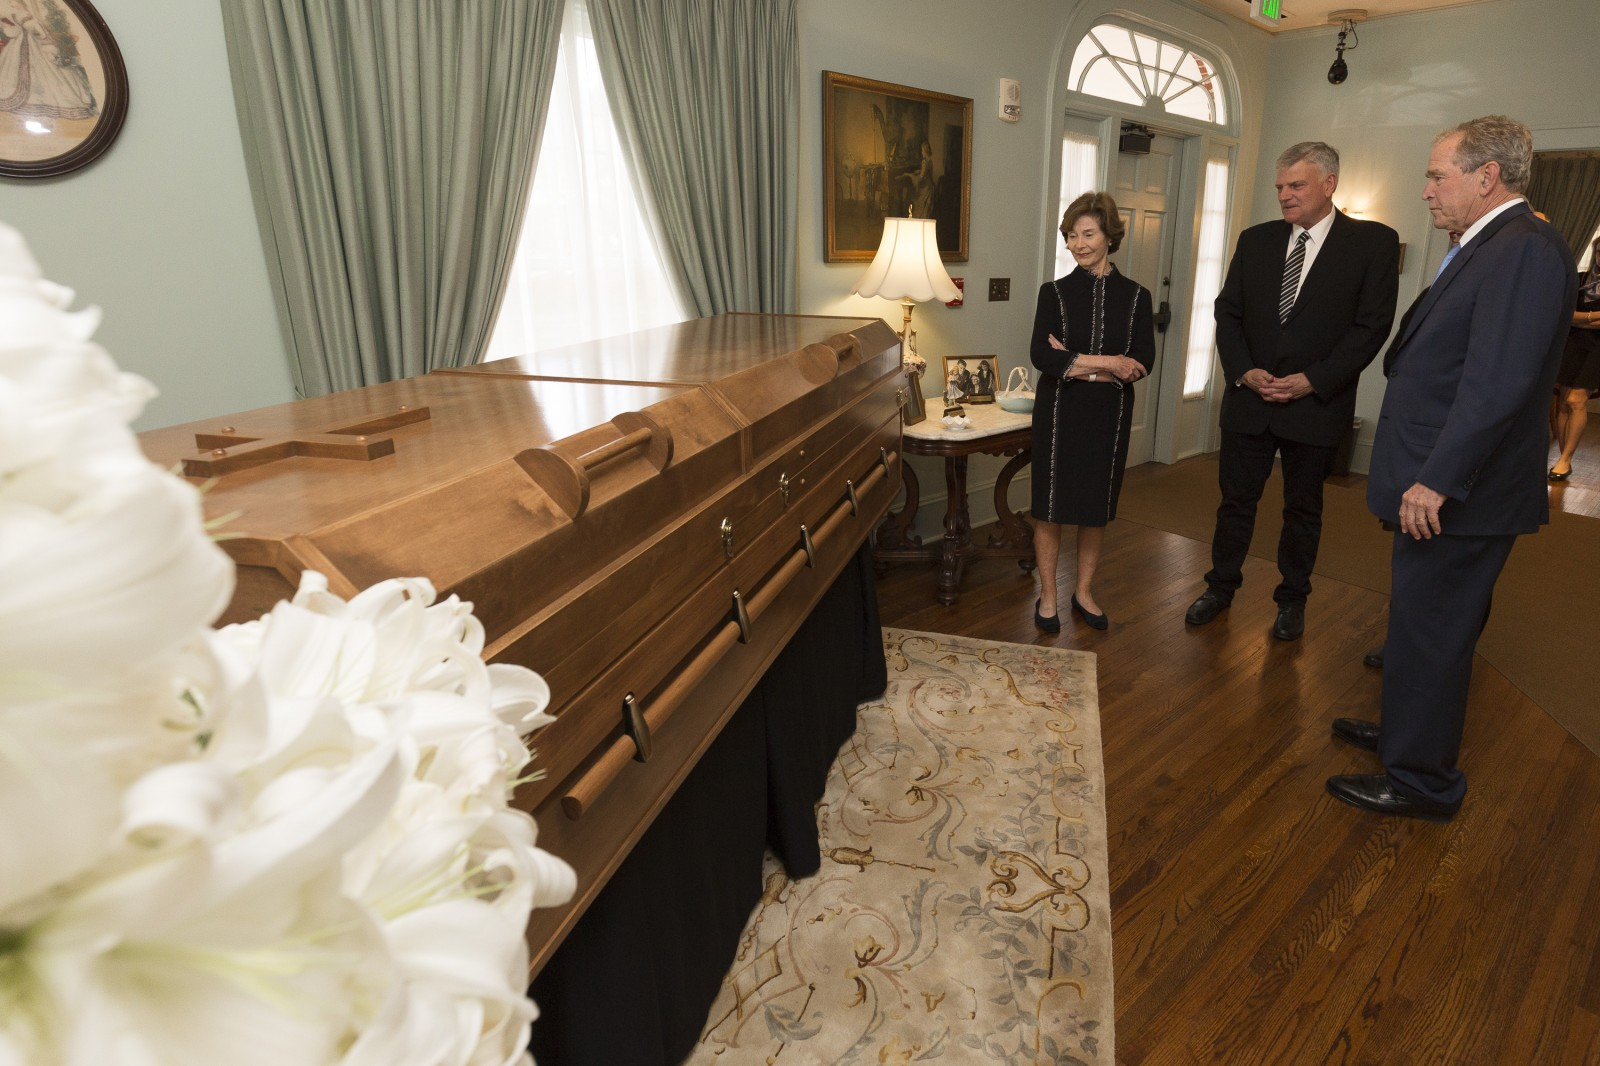 The Bushes visit with Franklin Graham and pay their respects. Photo: Billy Graham Evangelistic Association<p></p>